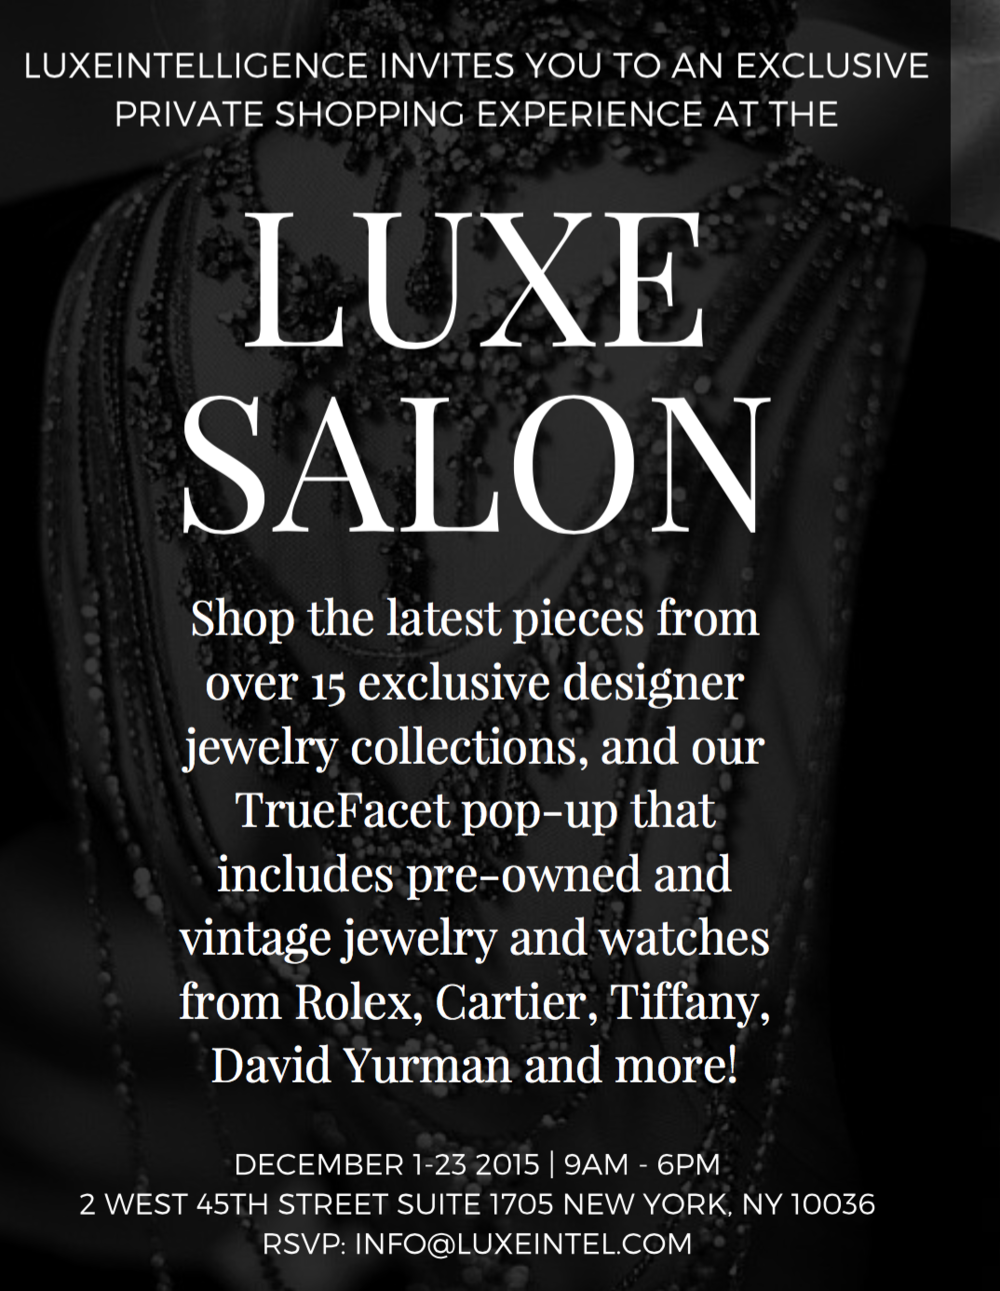 LUXE Salon Sale